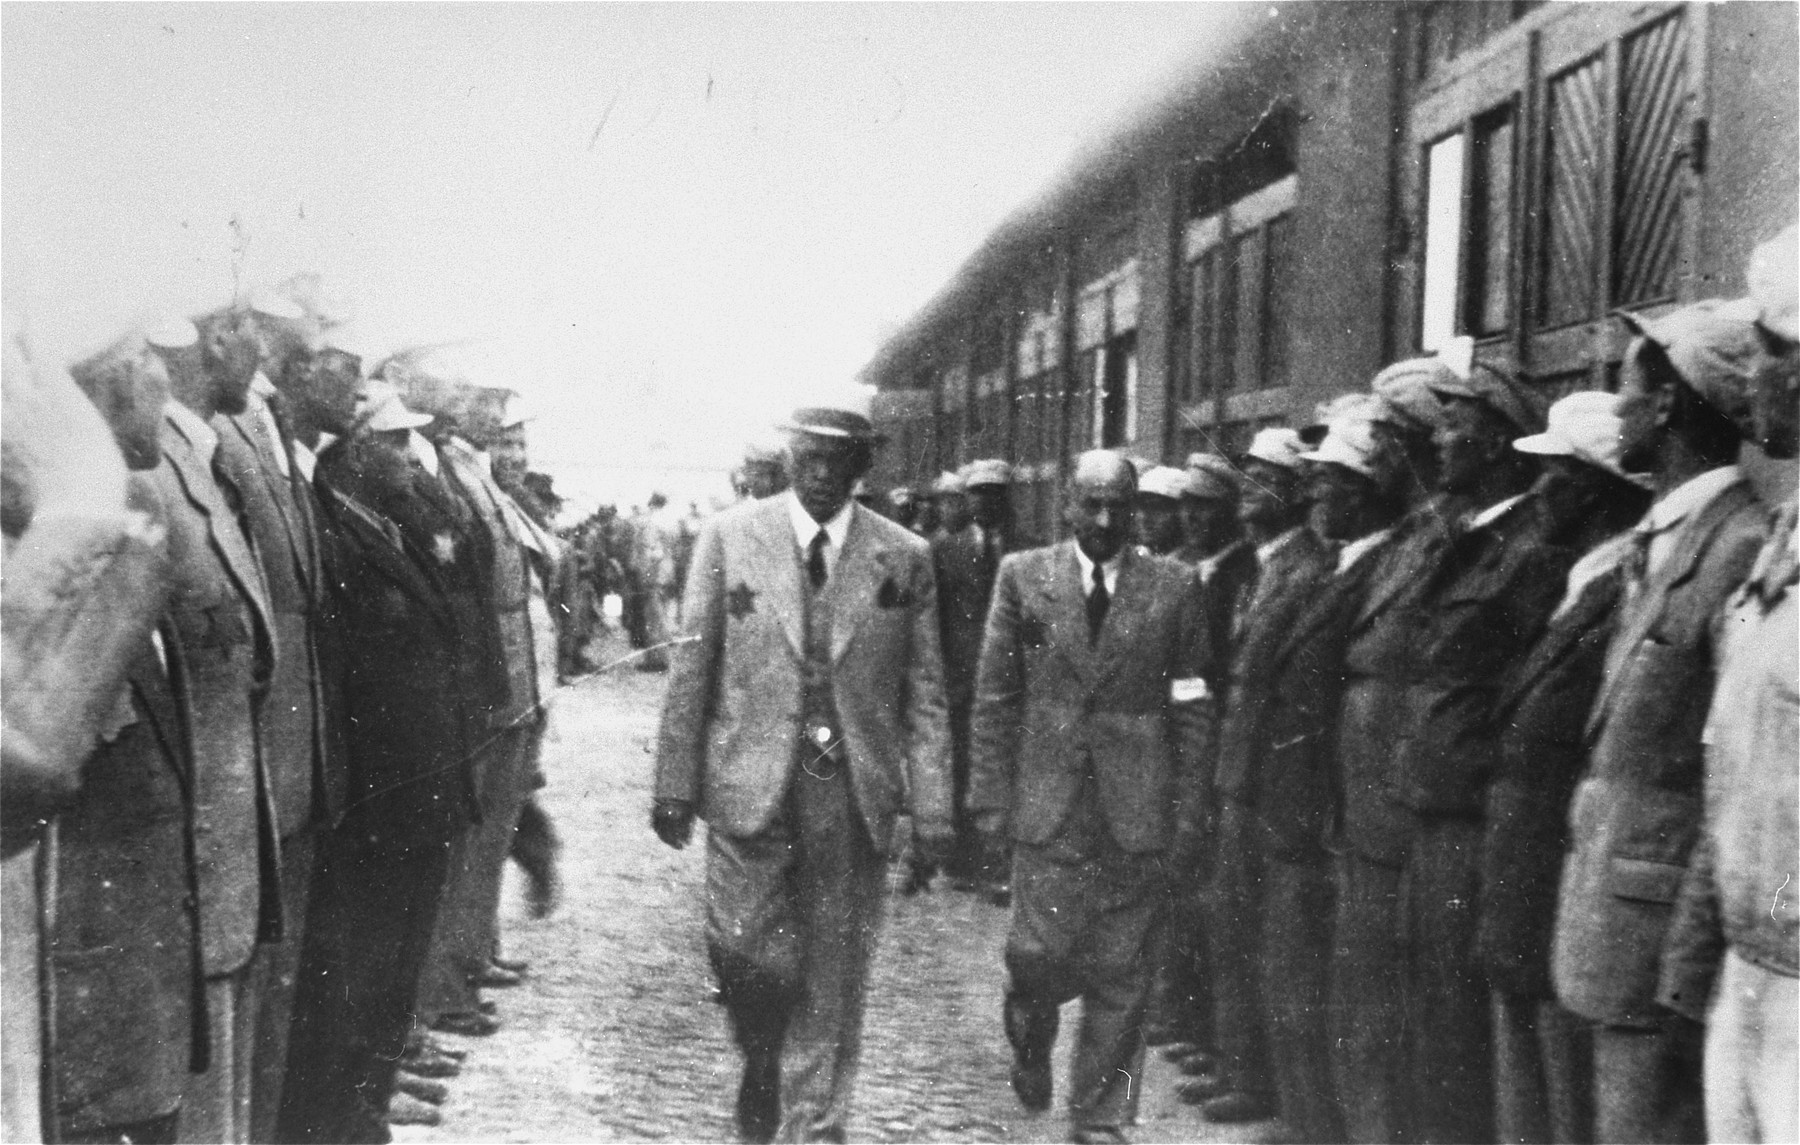 Mordechai Chaim Rumkowski and Leon Rozenblat  walk between two rows of young Jewish men in the Lodz ghetto.